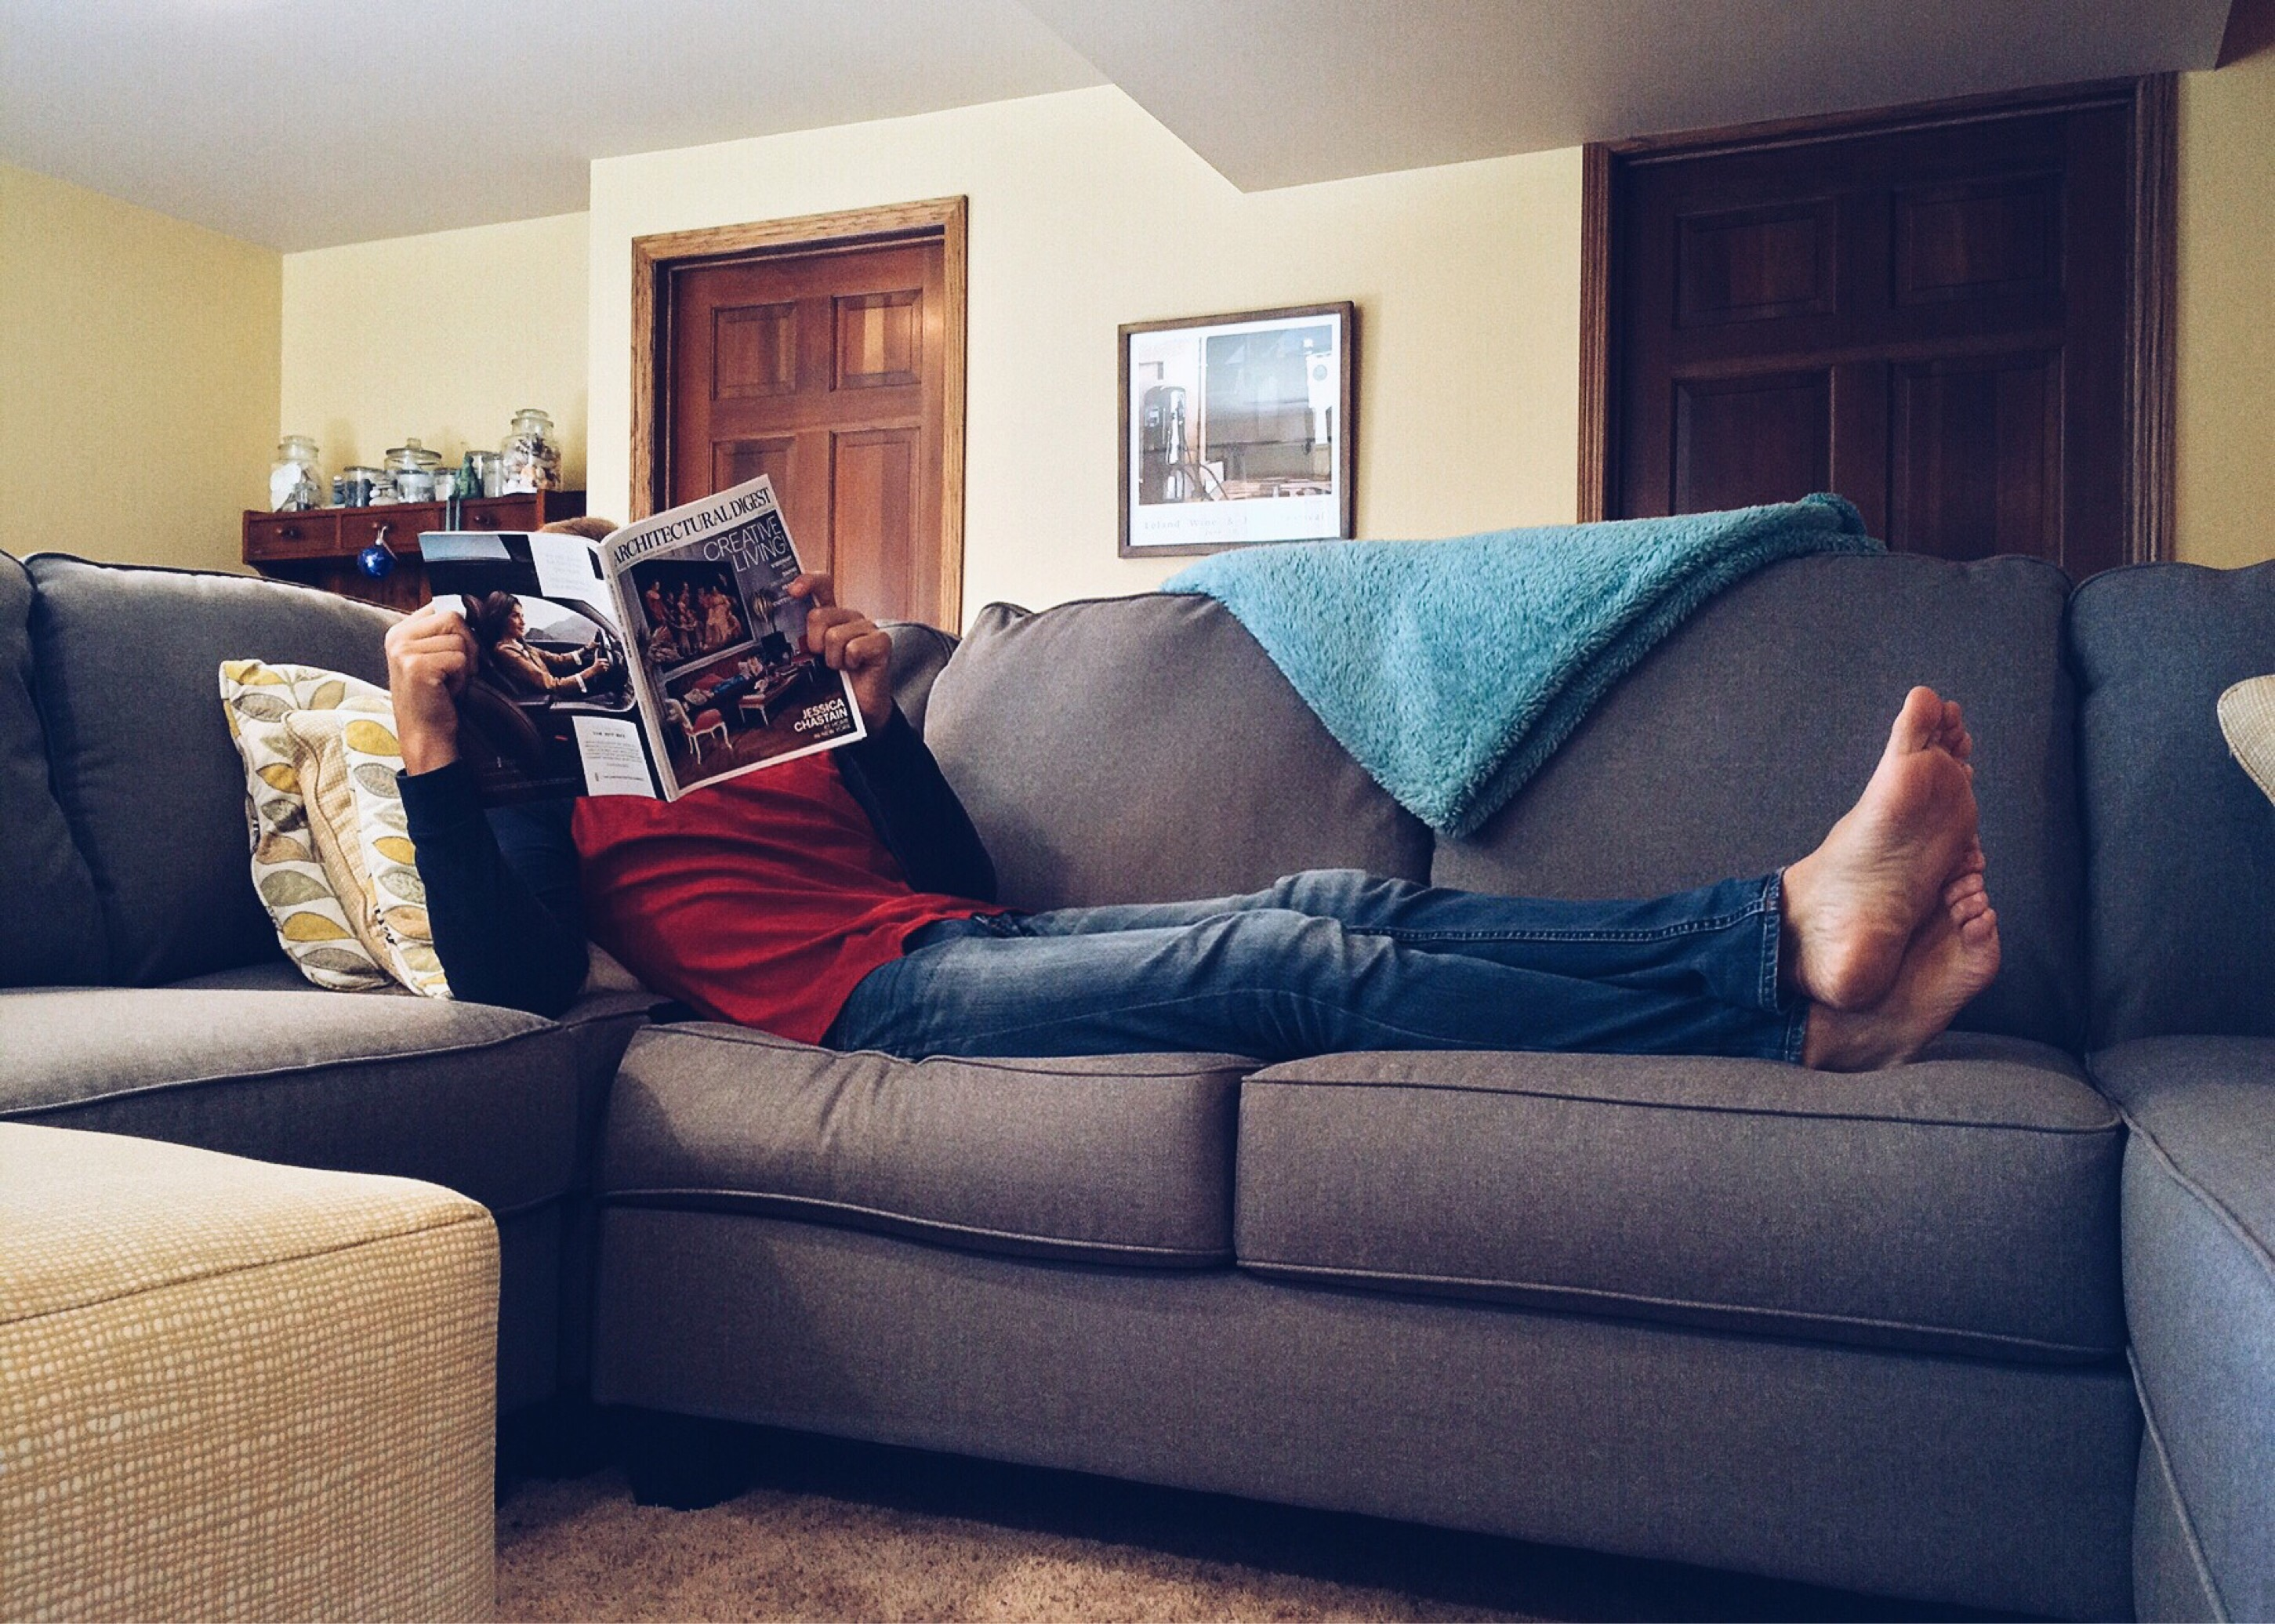 A person lounging on a gray couch reading a magazine